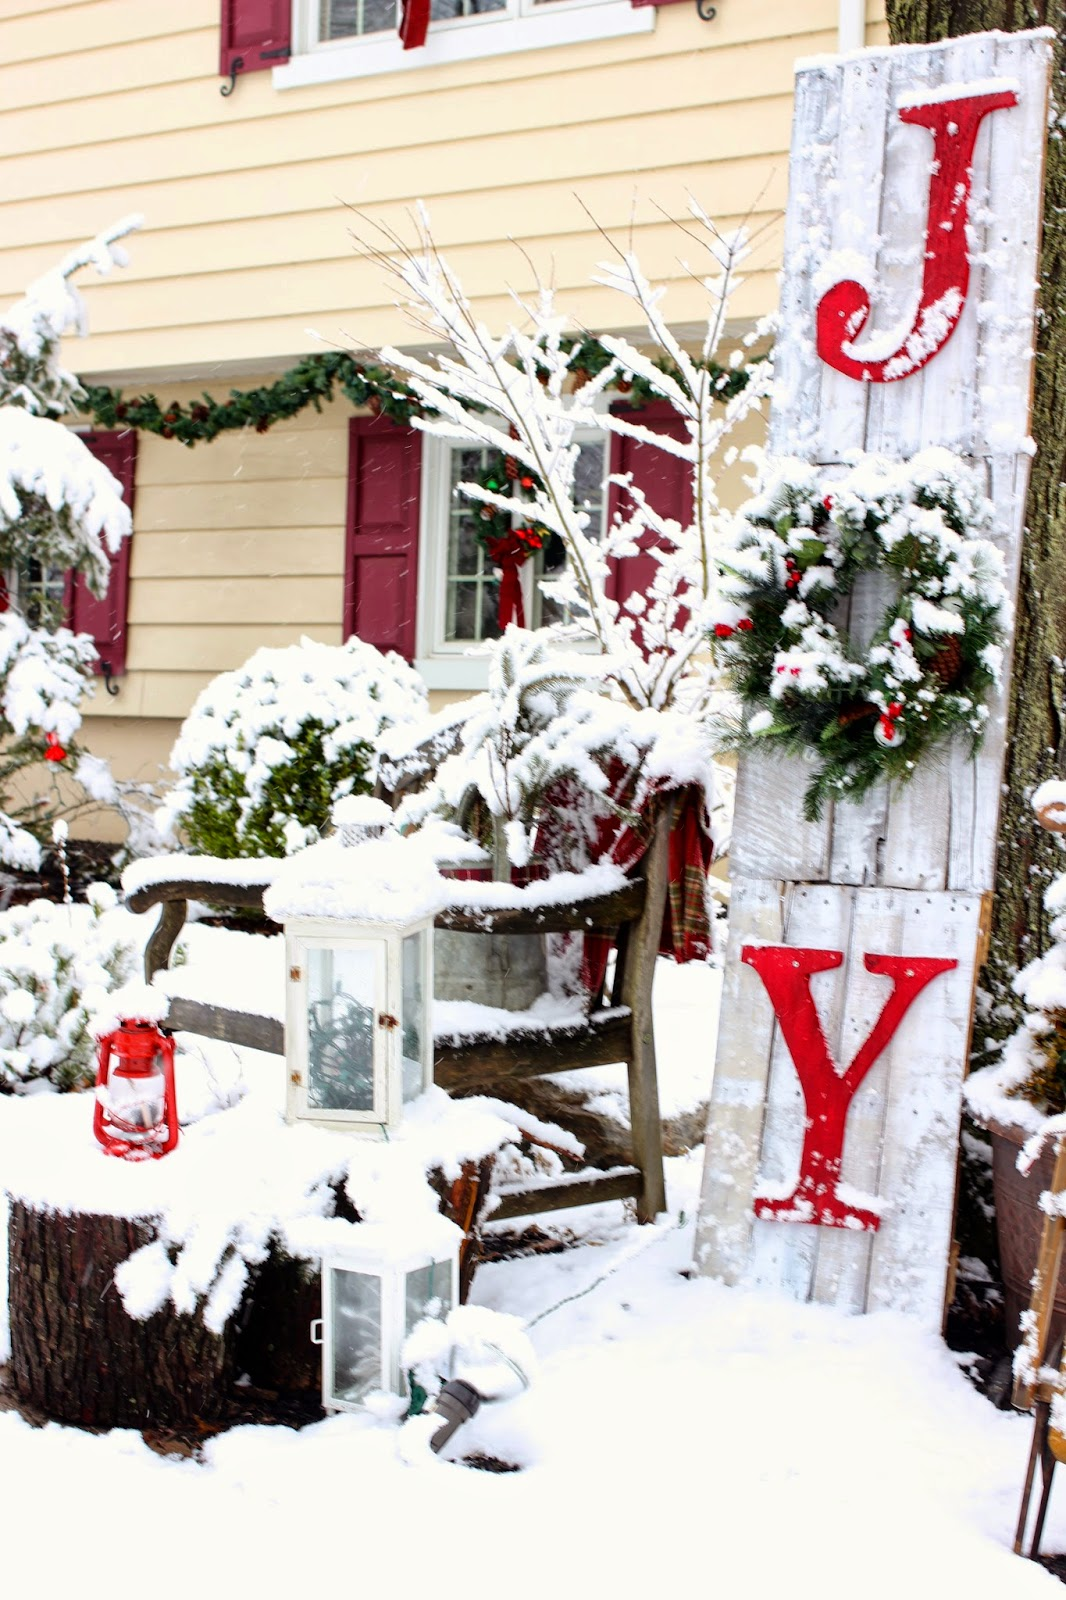 Golden boys and me holiday home tour 2014 for Holiday home christmas decorations